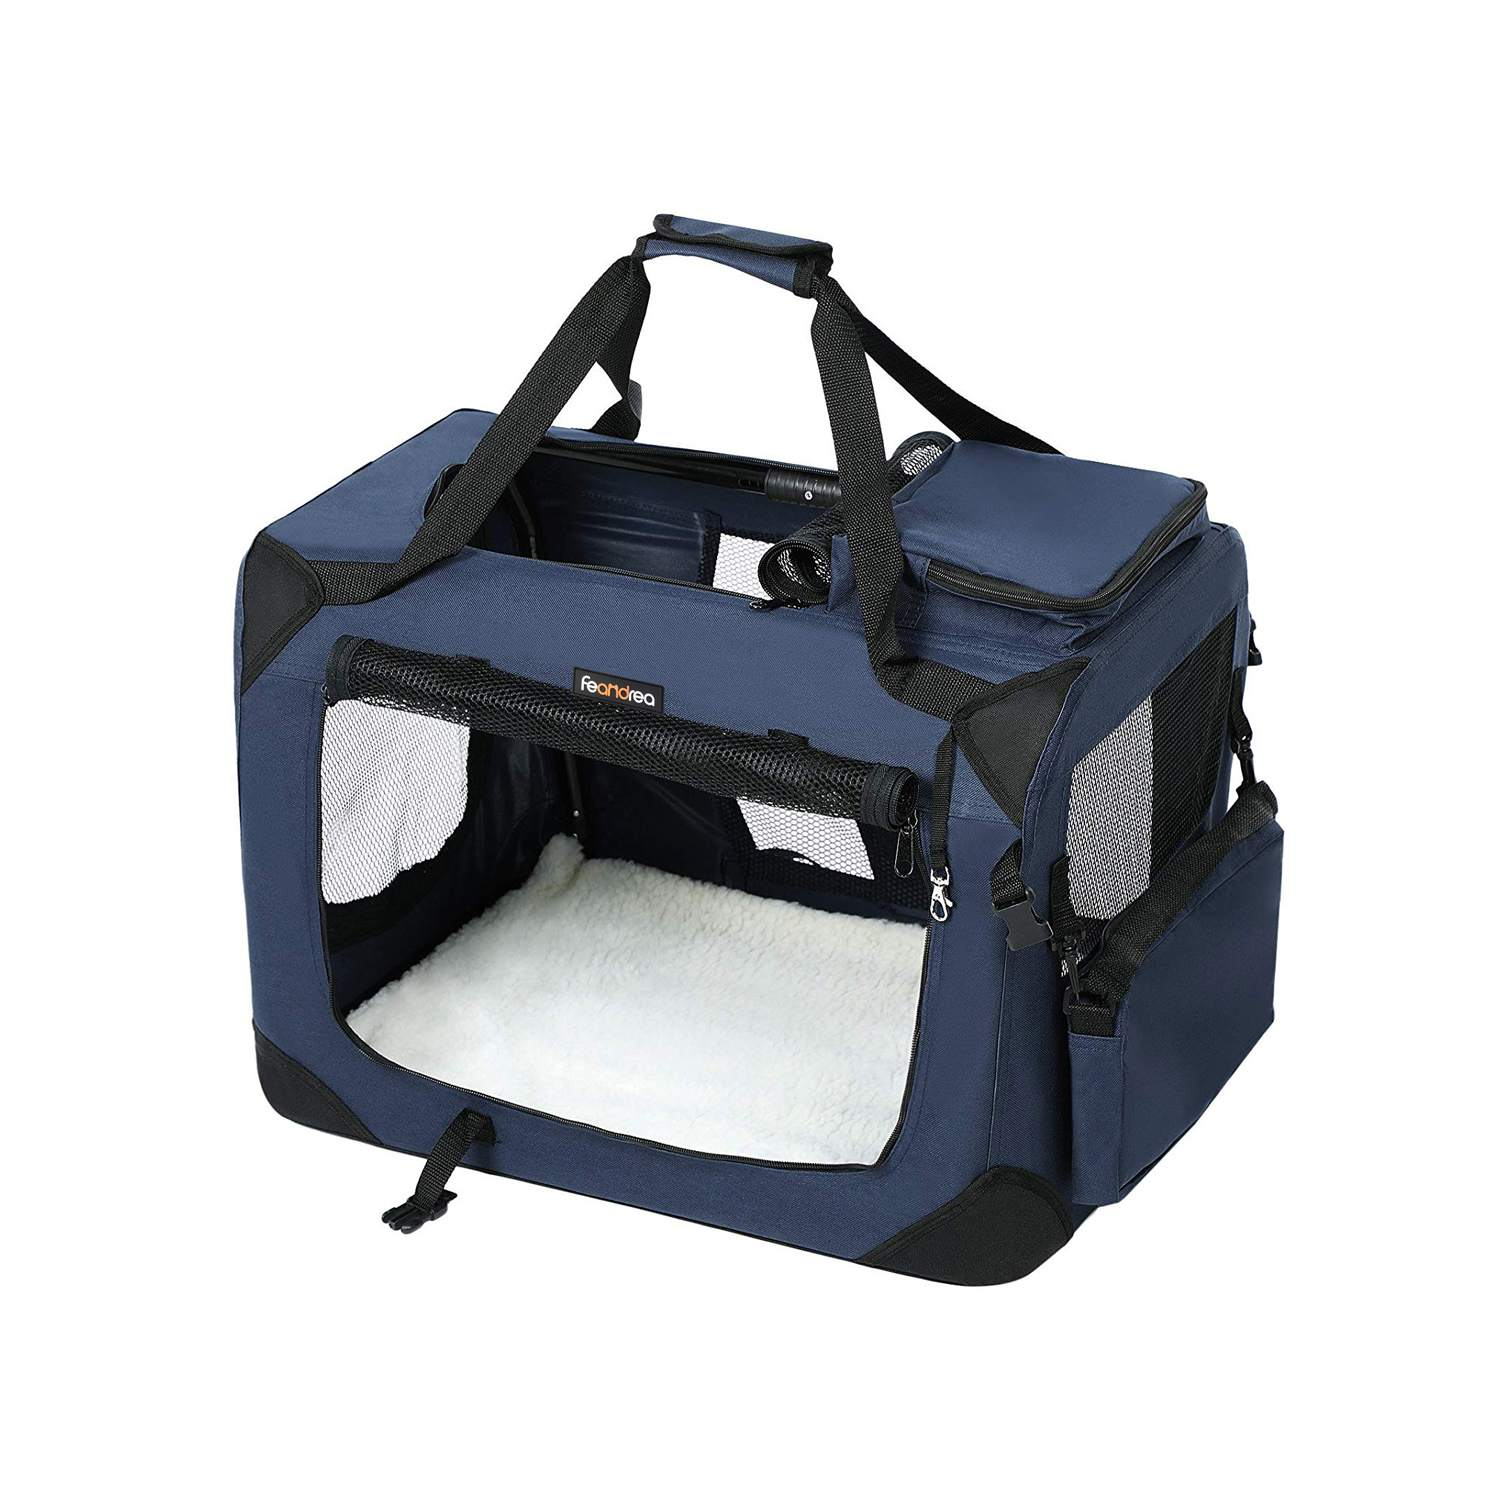 FEANDREA Medium Blue Pet Carrier